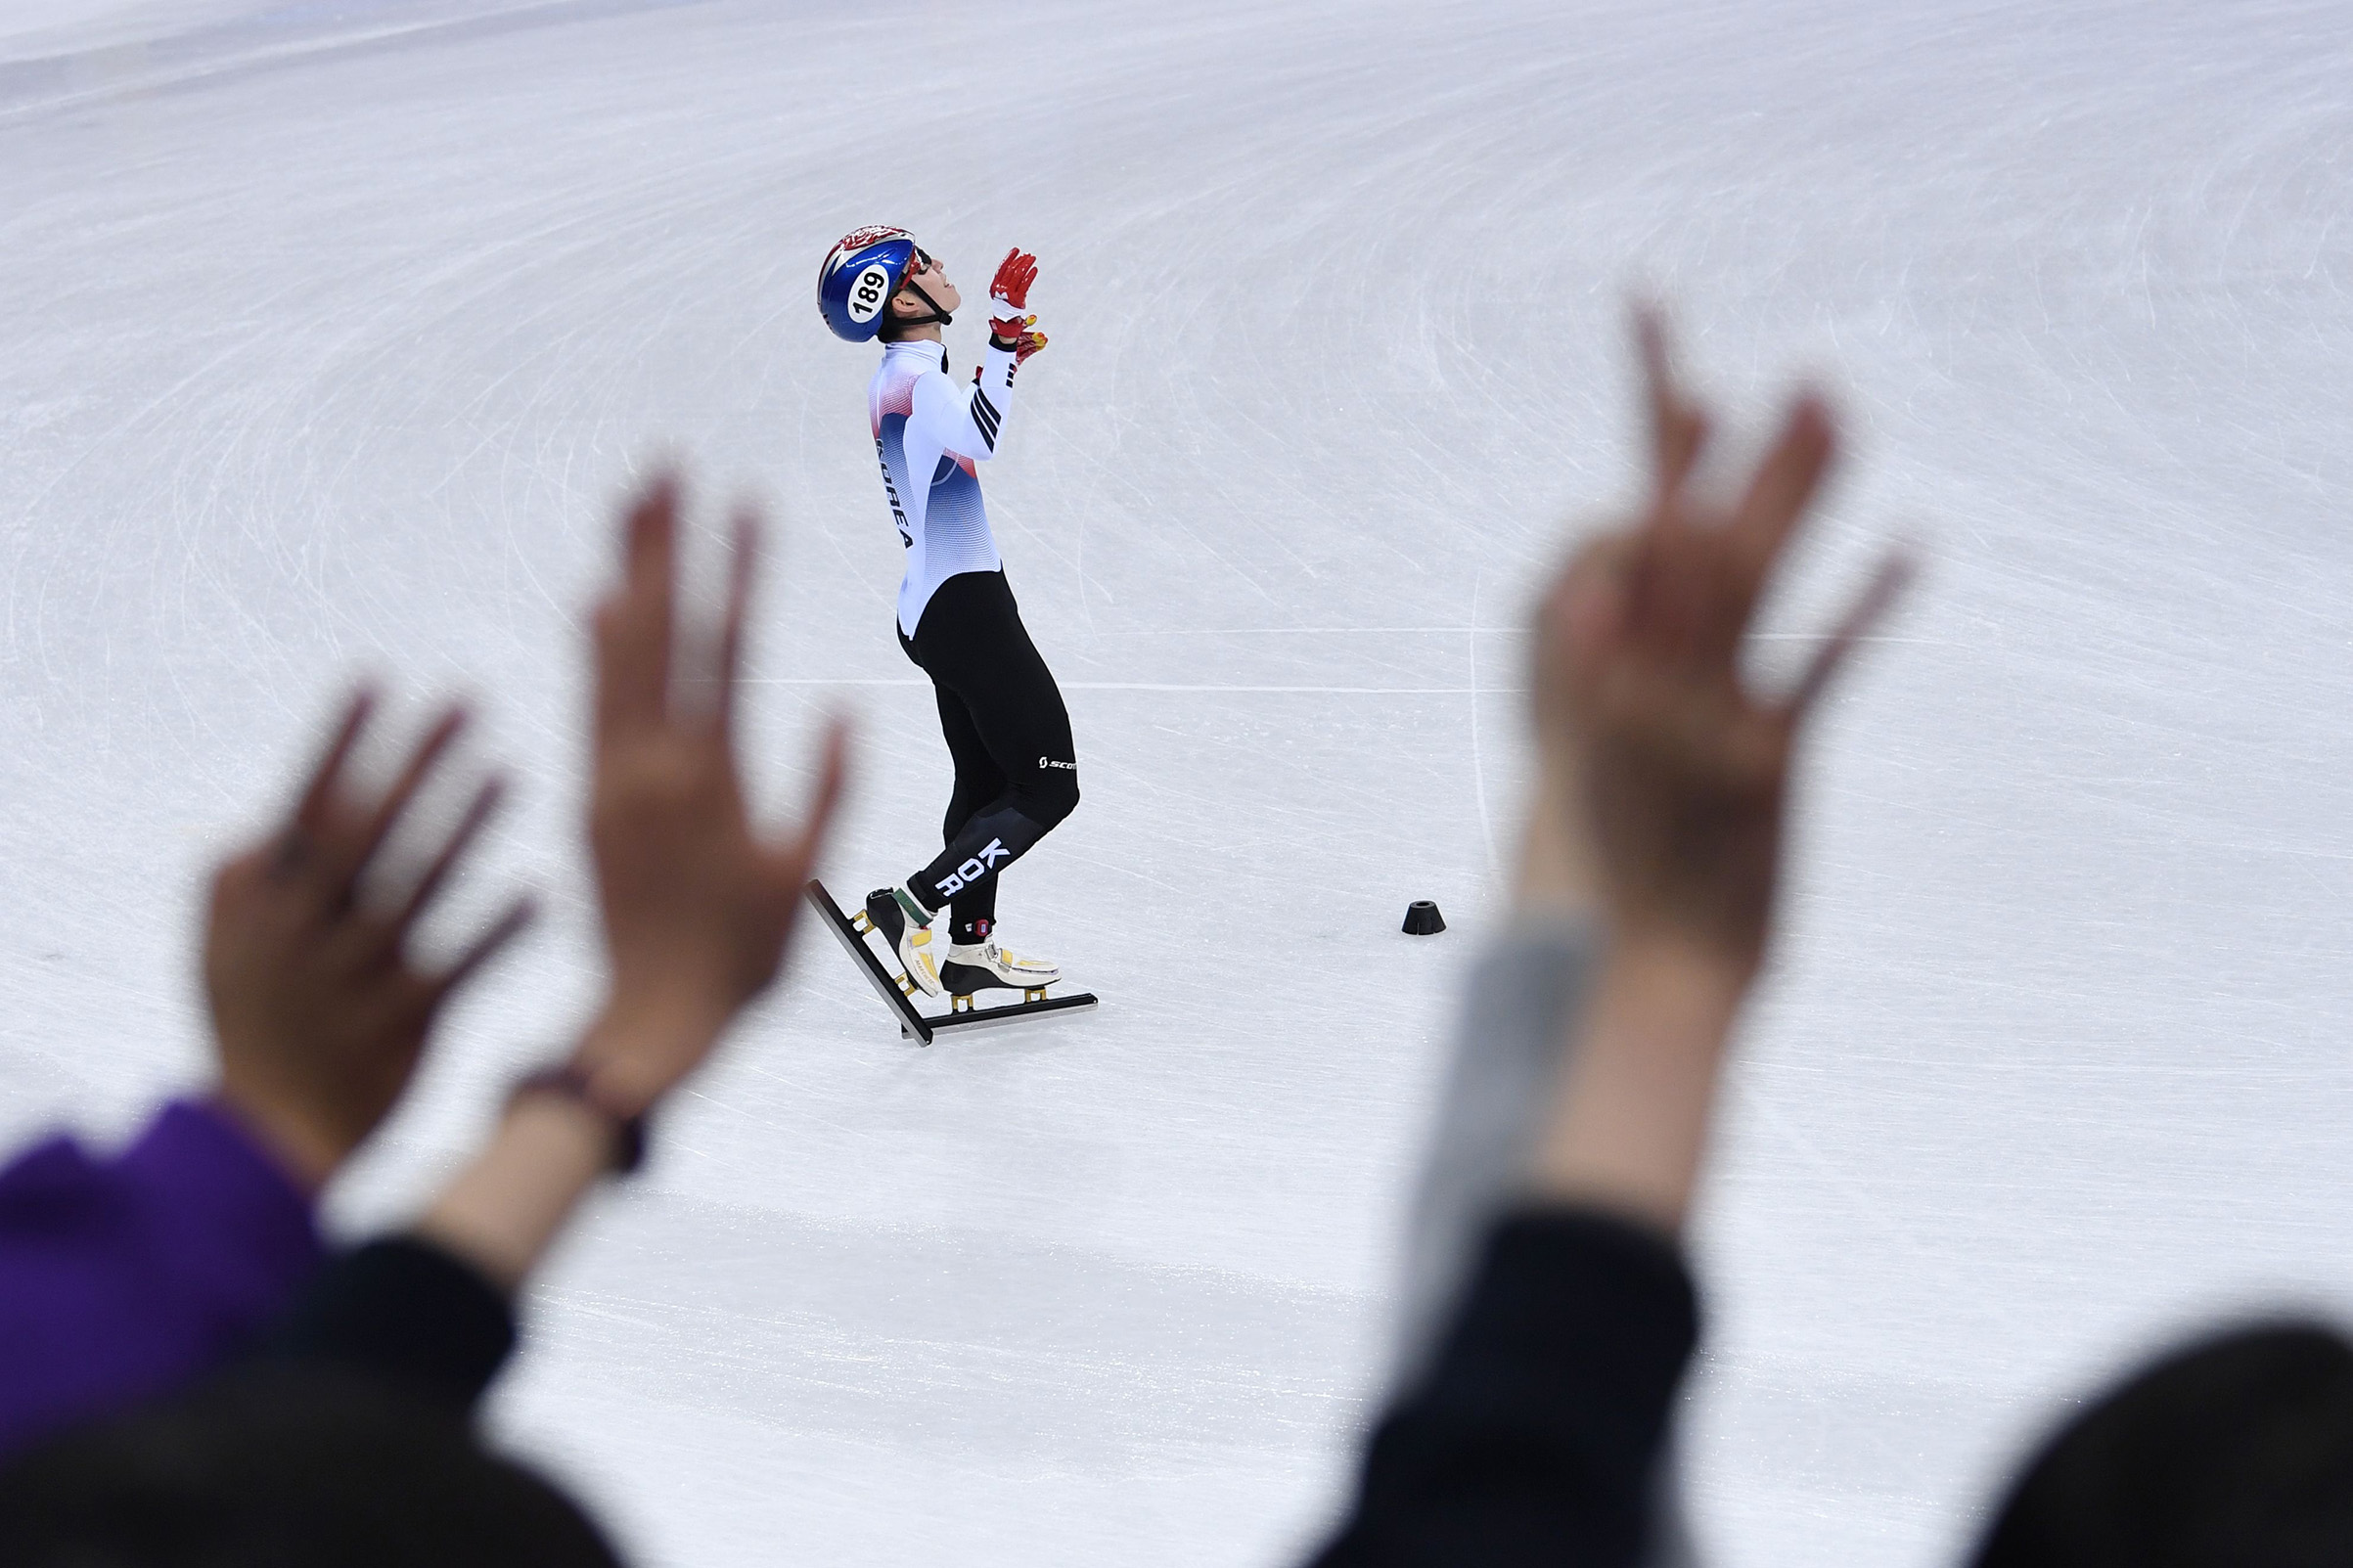 South Korea's Lim Hyojun celebrates after the men's 5,000m relay short track speed skating heat event on Feb. 13, 2018.